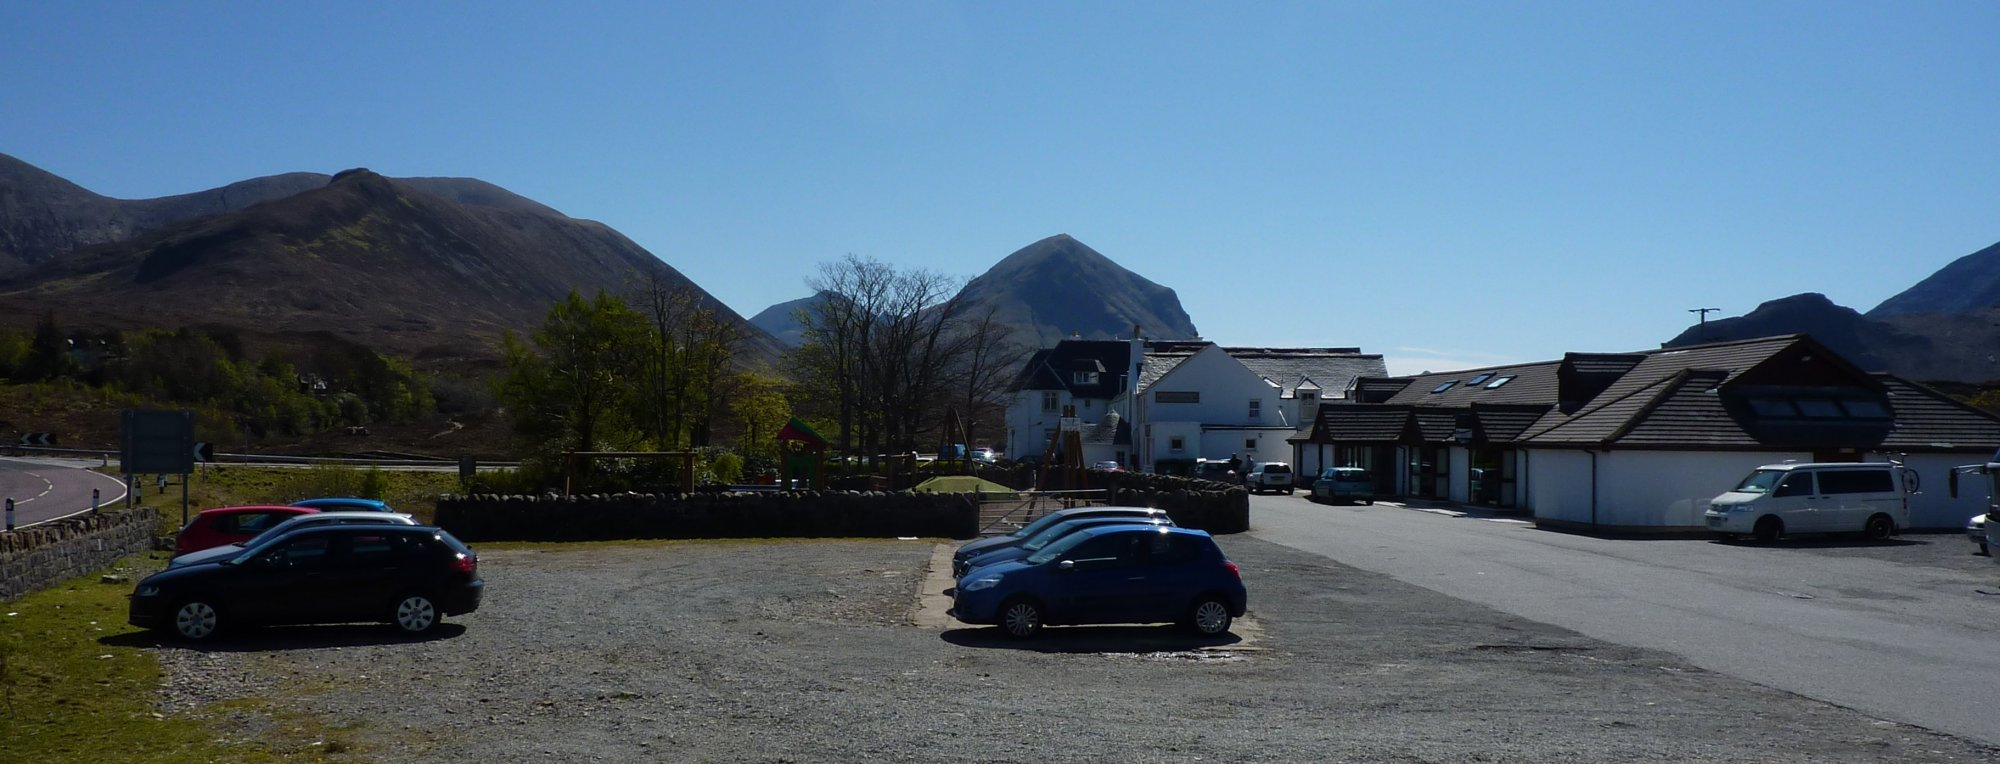 Arrival at the Sligachan Hotel and time for a cold Irn Bru while I wait for Rog to return to the car